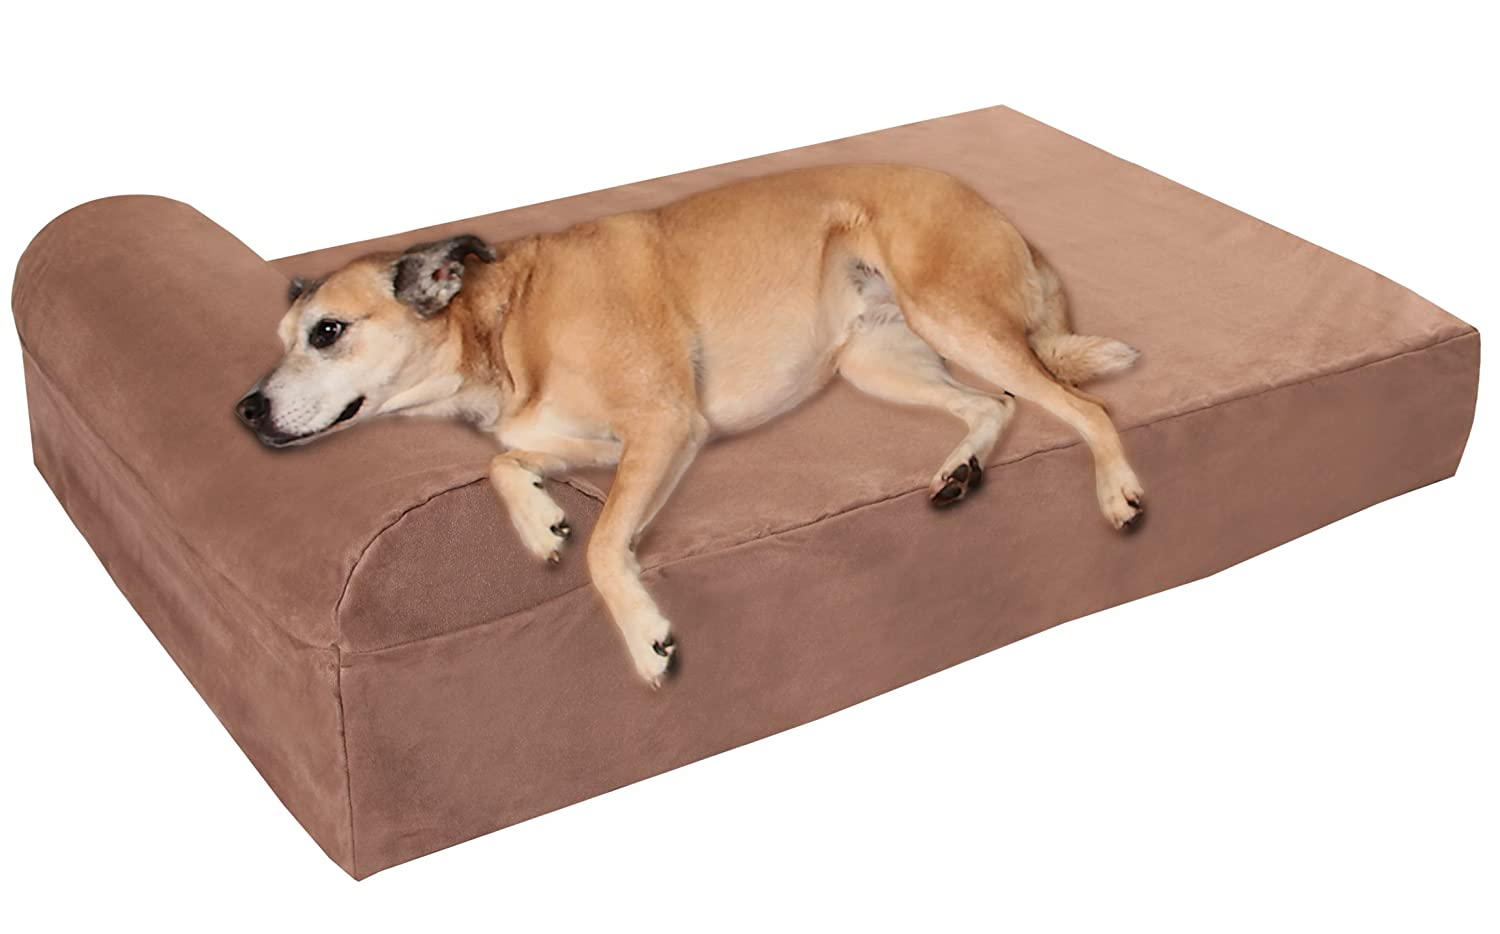 Best orthopedic dog beds for large dogs herepup for Big dog furniture